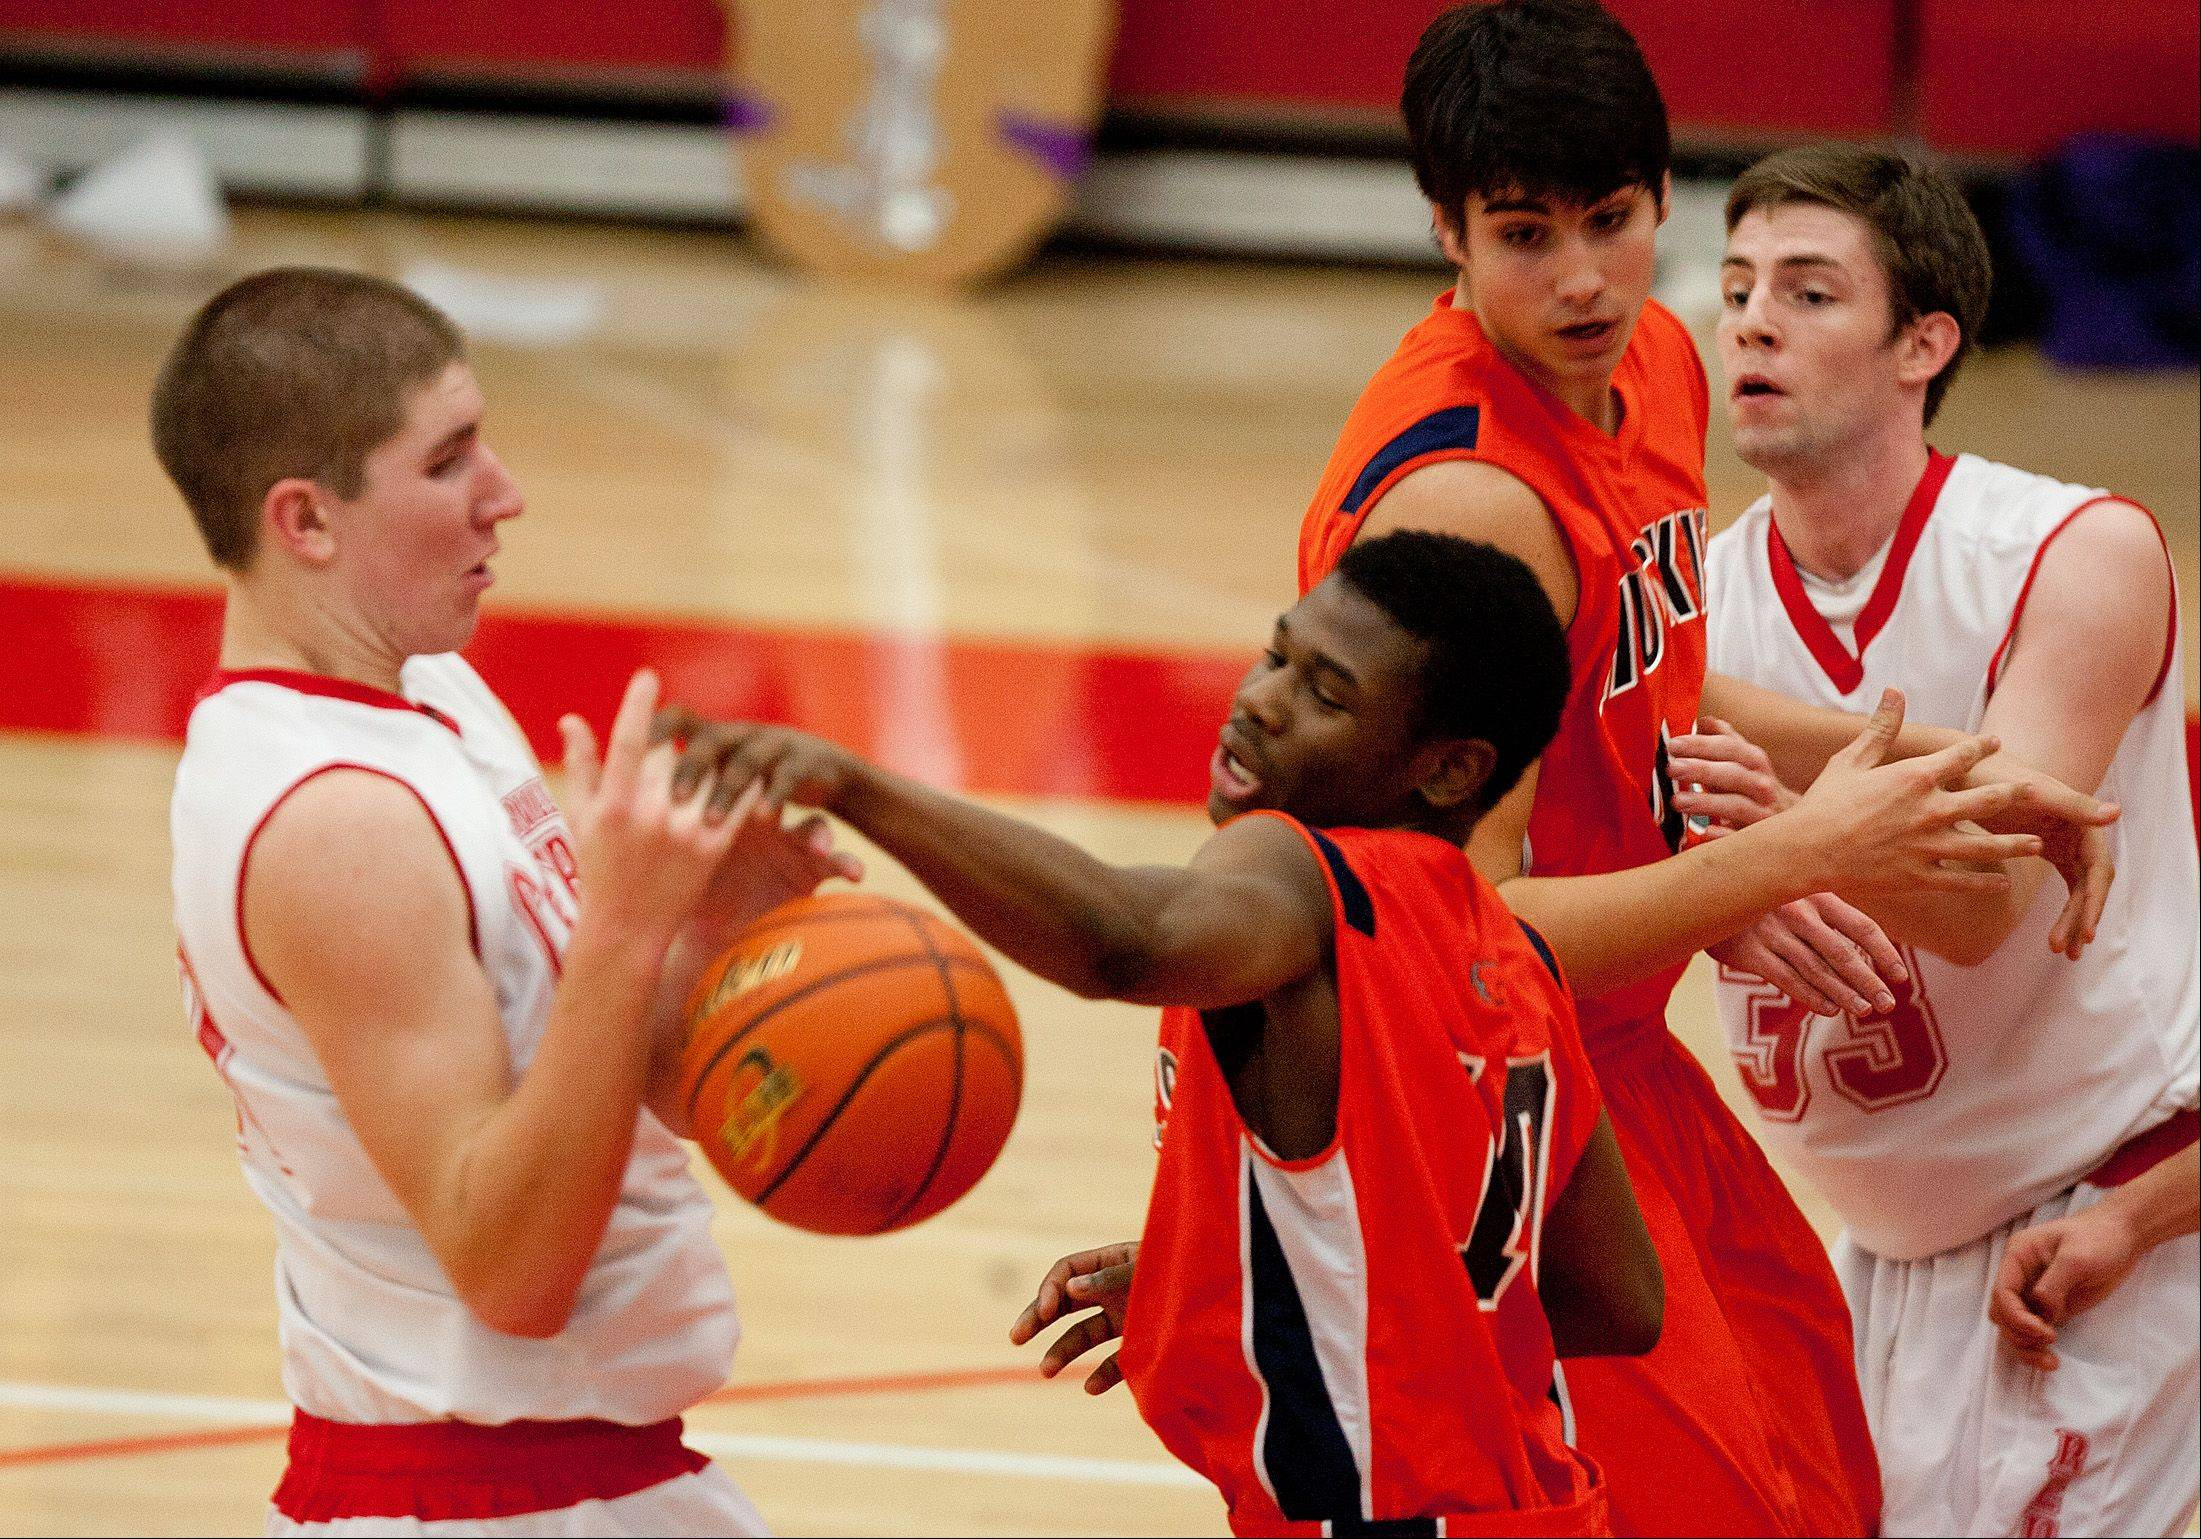 Images: Naperville Central vs. Naperville North, boys basketball